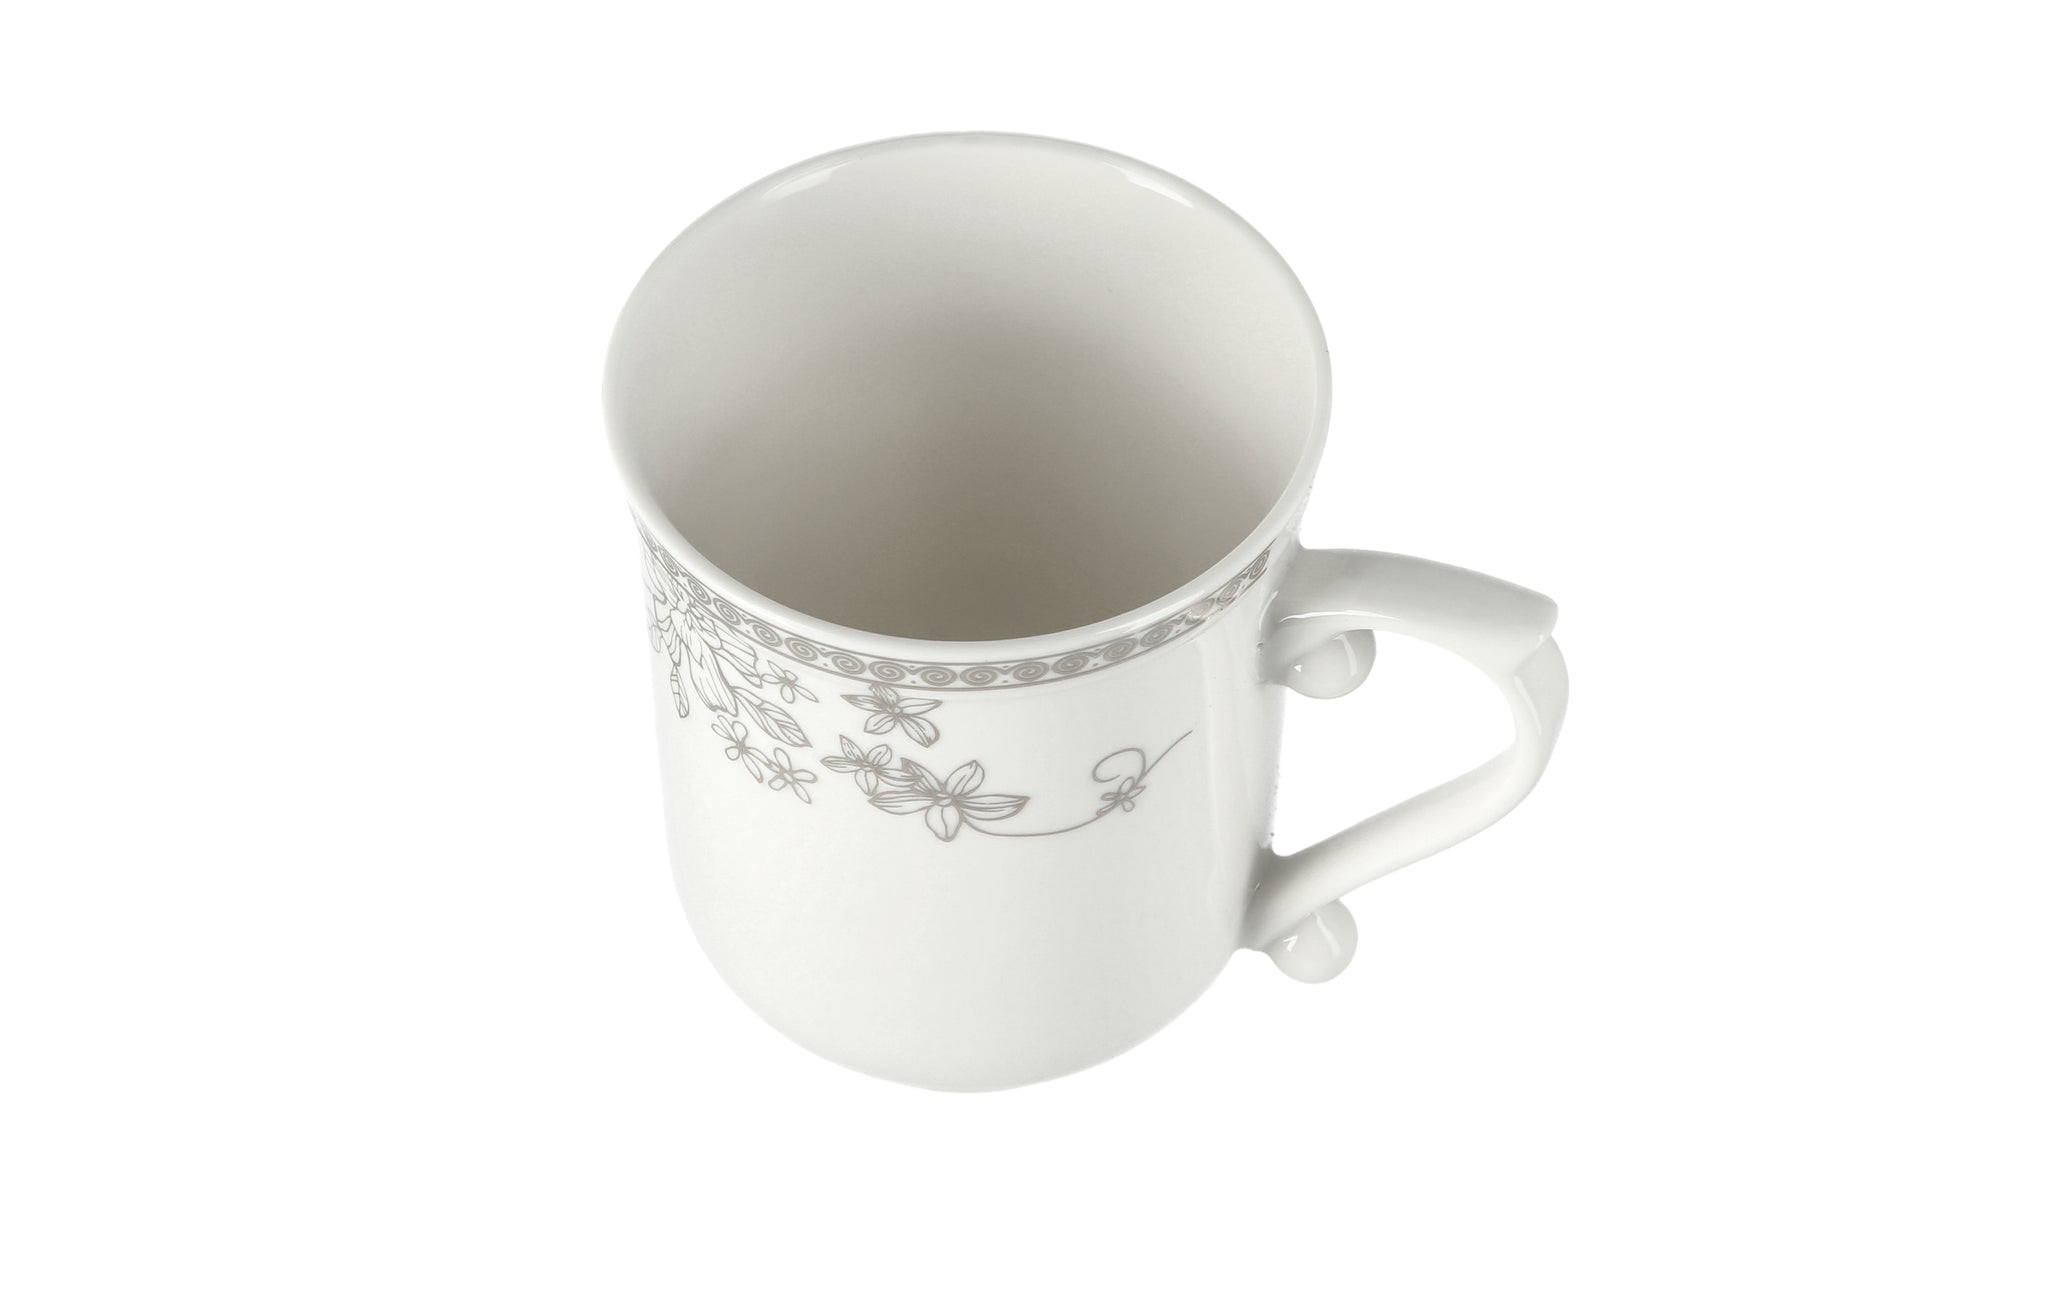 Royalford RF6688 14Oz Bone Wave Coffee Mug - Large Coffee & Tea Mug, Traditional Extra Large Tea Mug, Thick Wall Small Portable Mug | Curved Loop Handle | Ideal for Hot & Cold Drinks